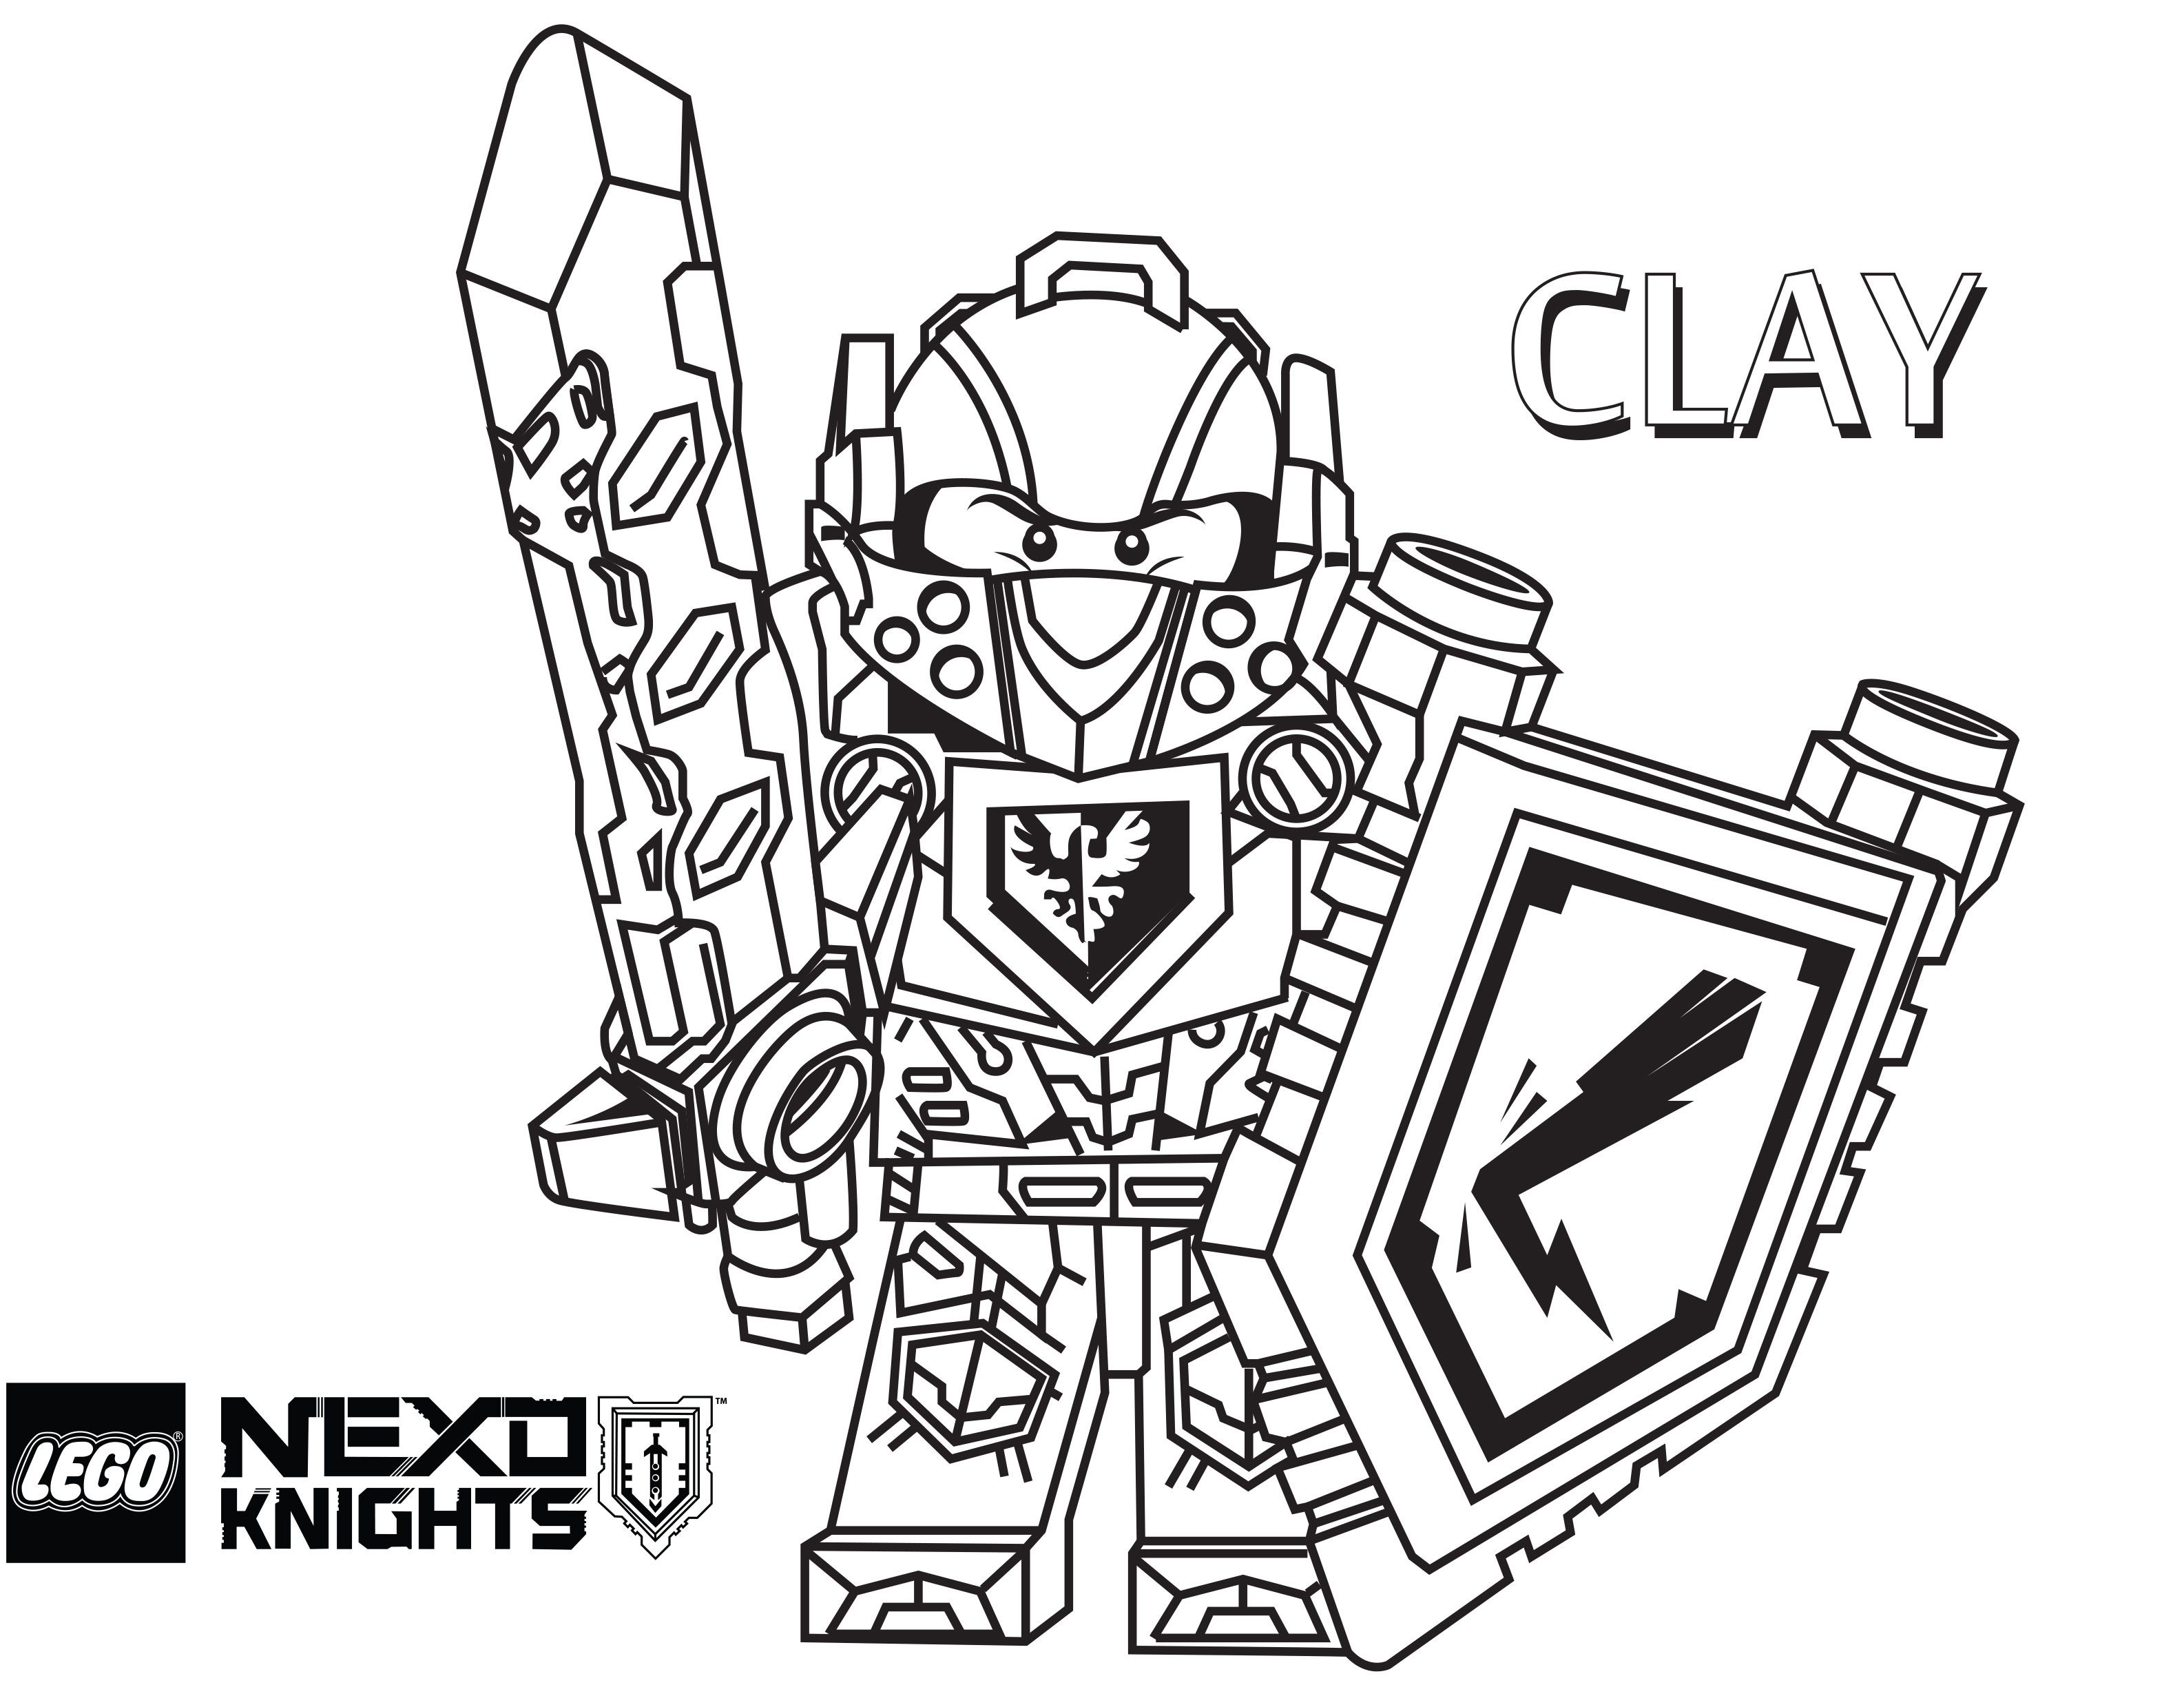 Nexo Knights Ausmalbilder Aaron : Lego Nexo Knights Coloring Pages Free Printable Lego Nexo Knights